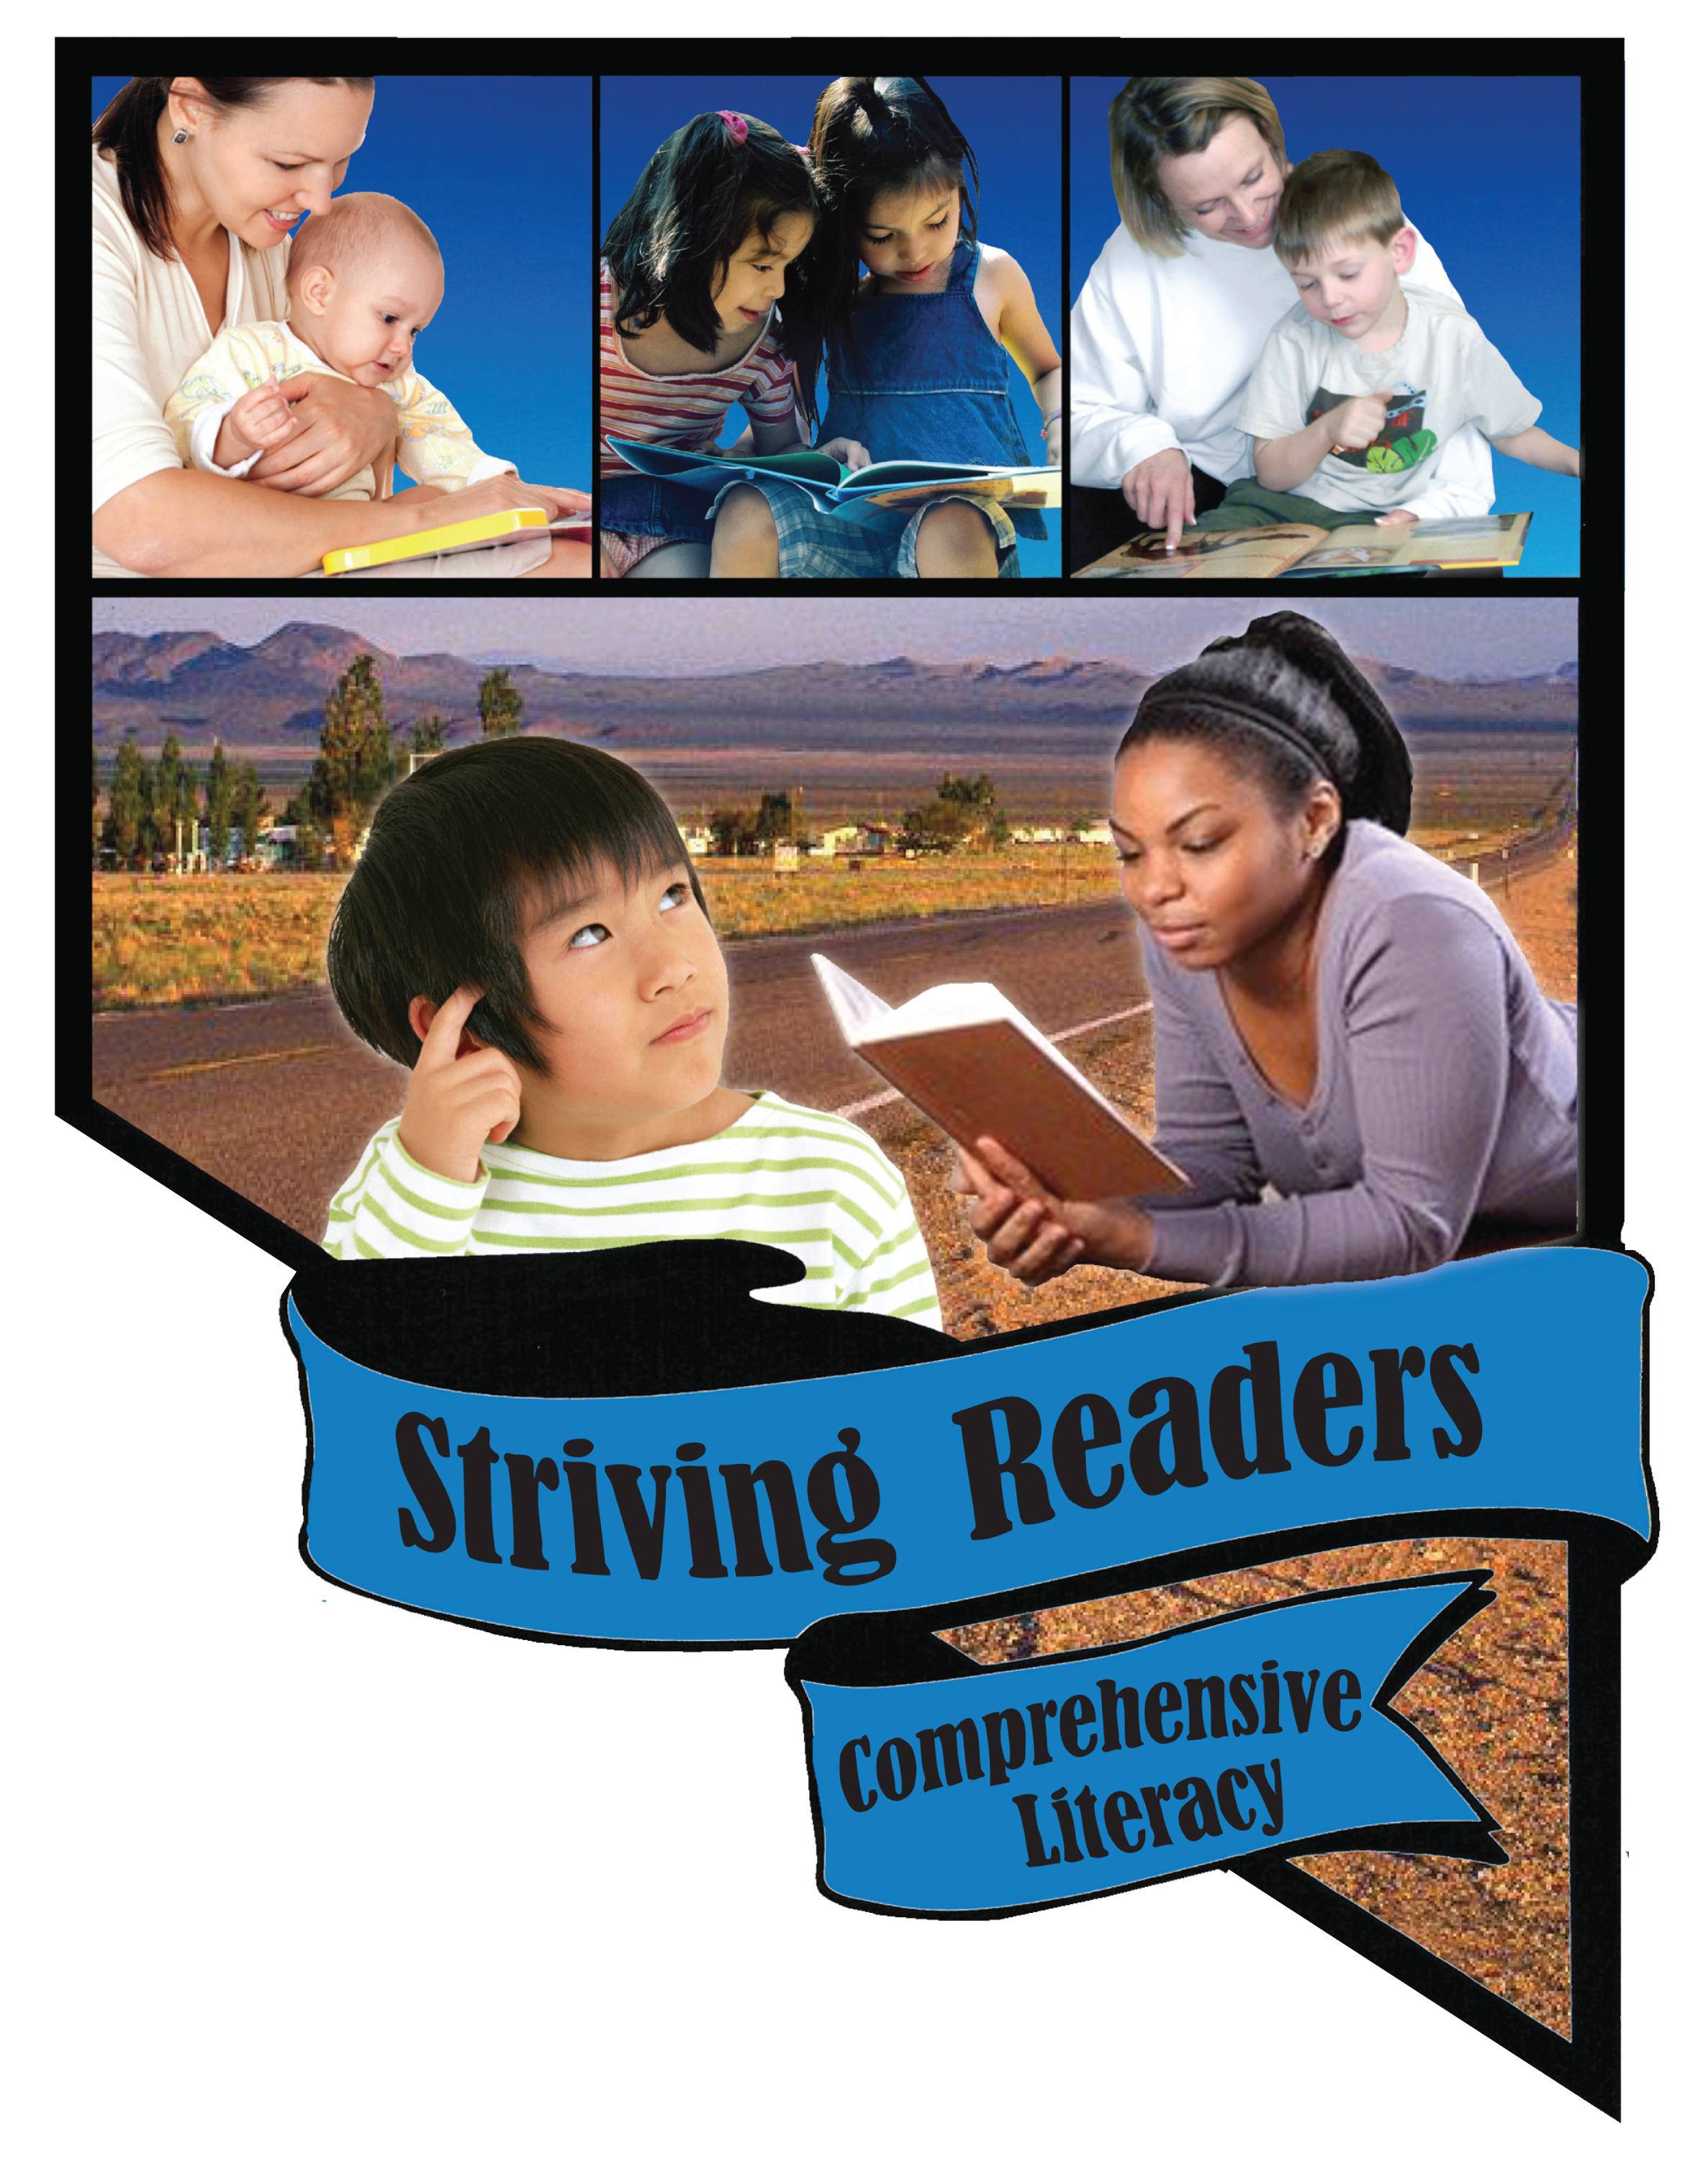 Striving readers